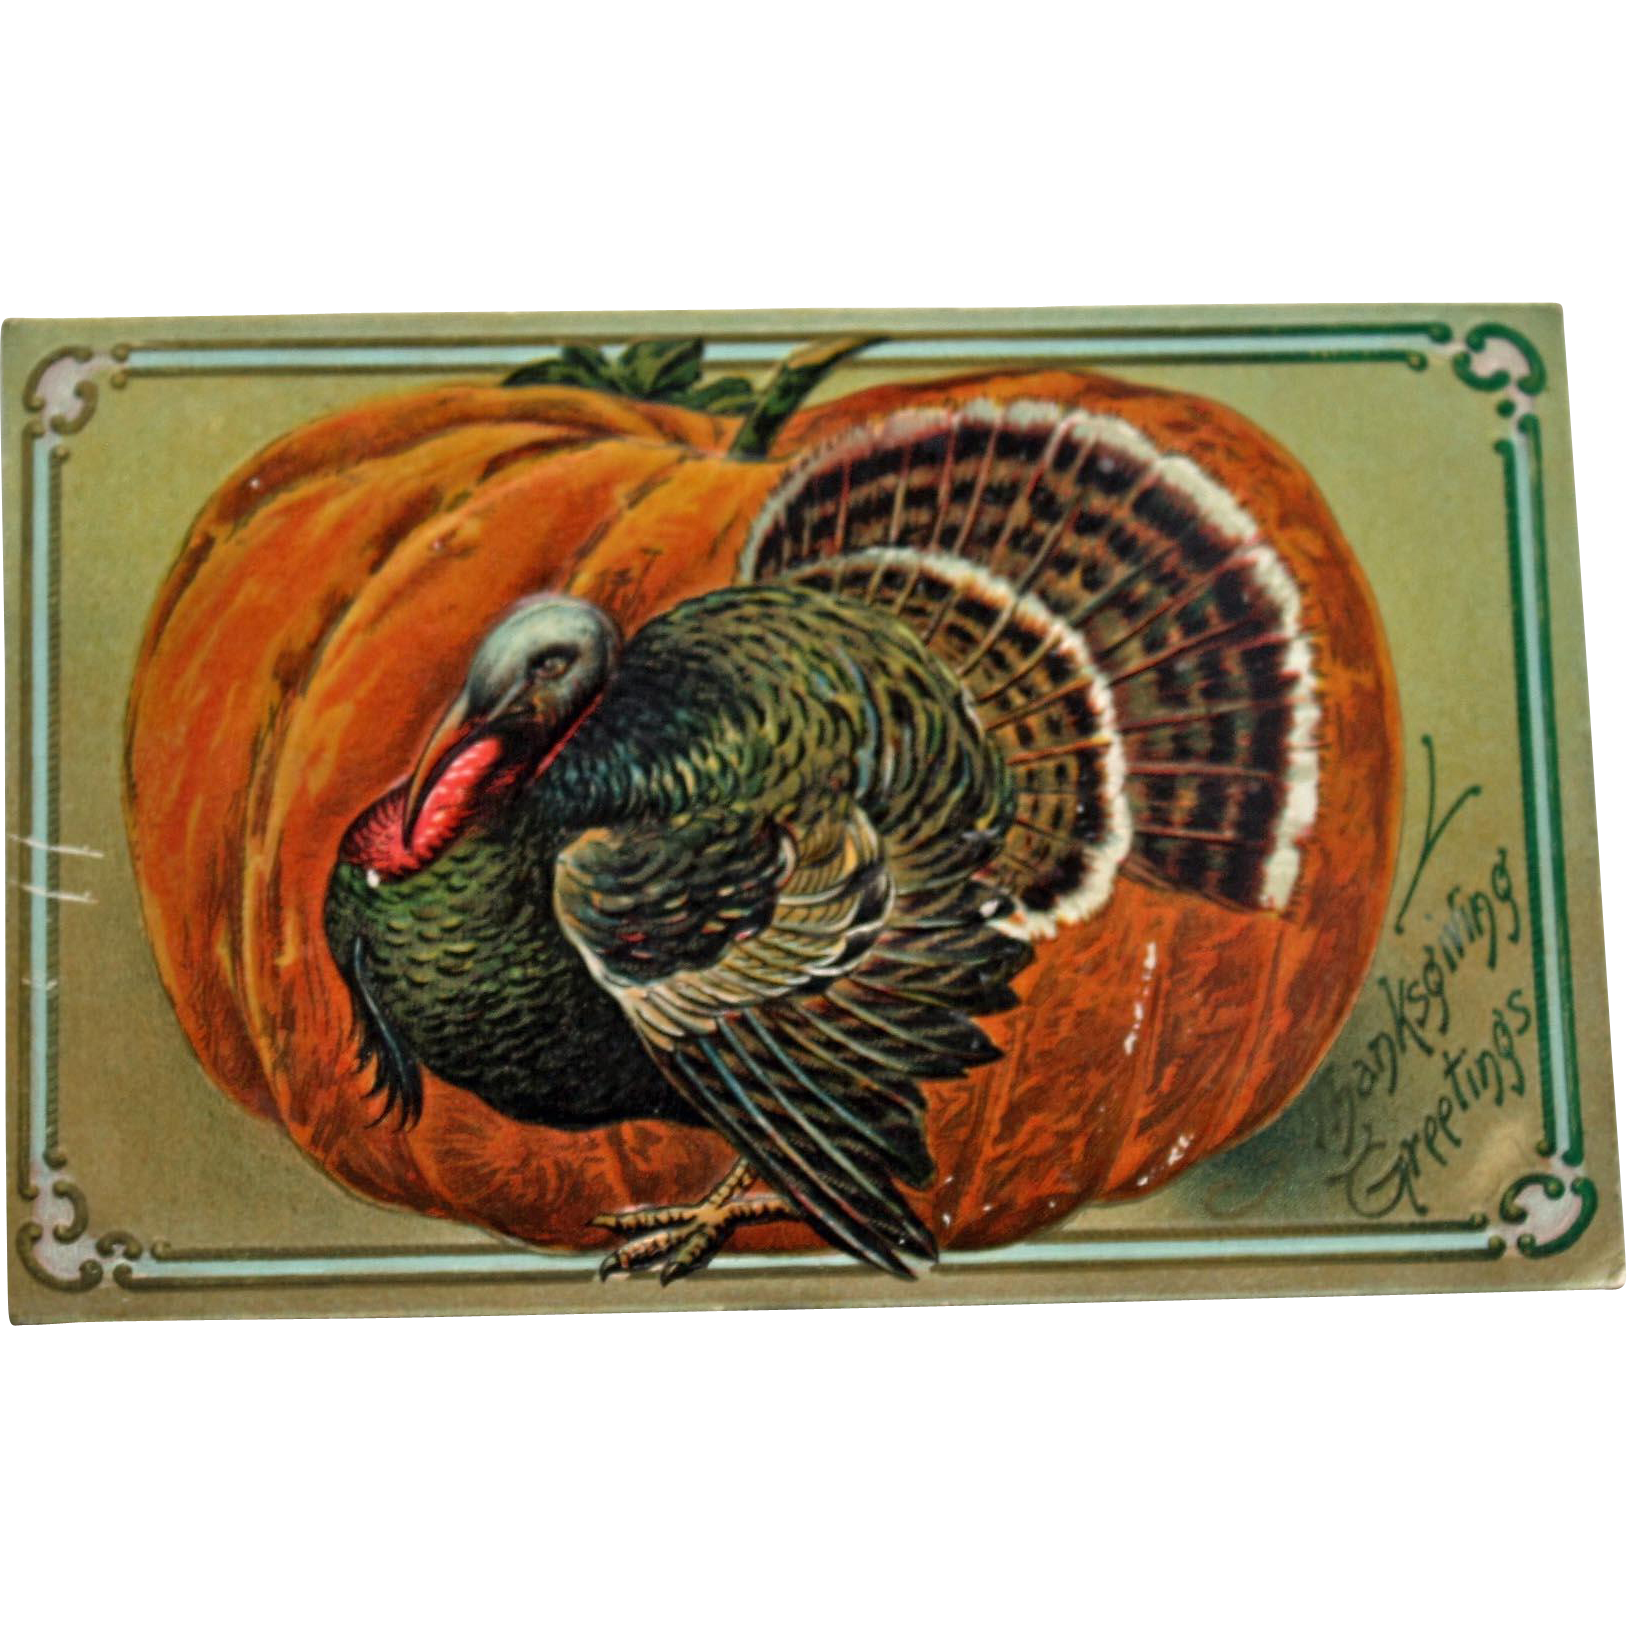 Thanksgiving travelling clipart picture freeuse library Antique Thanksgiving Postcard with Turkey and Large Pumpkin | rug ... picture freeuse library